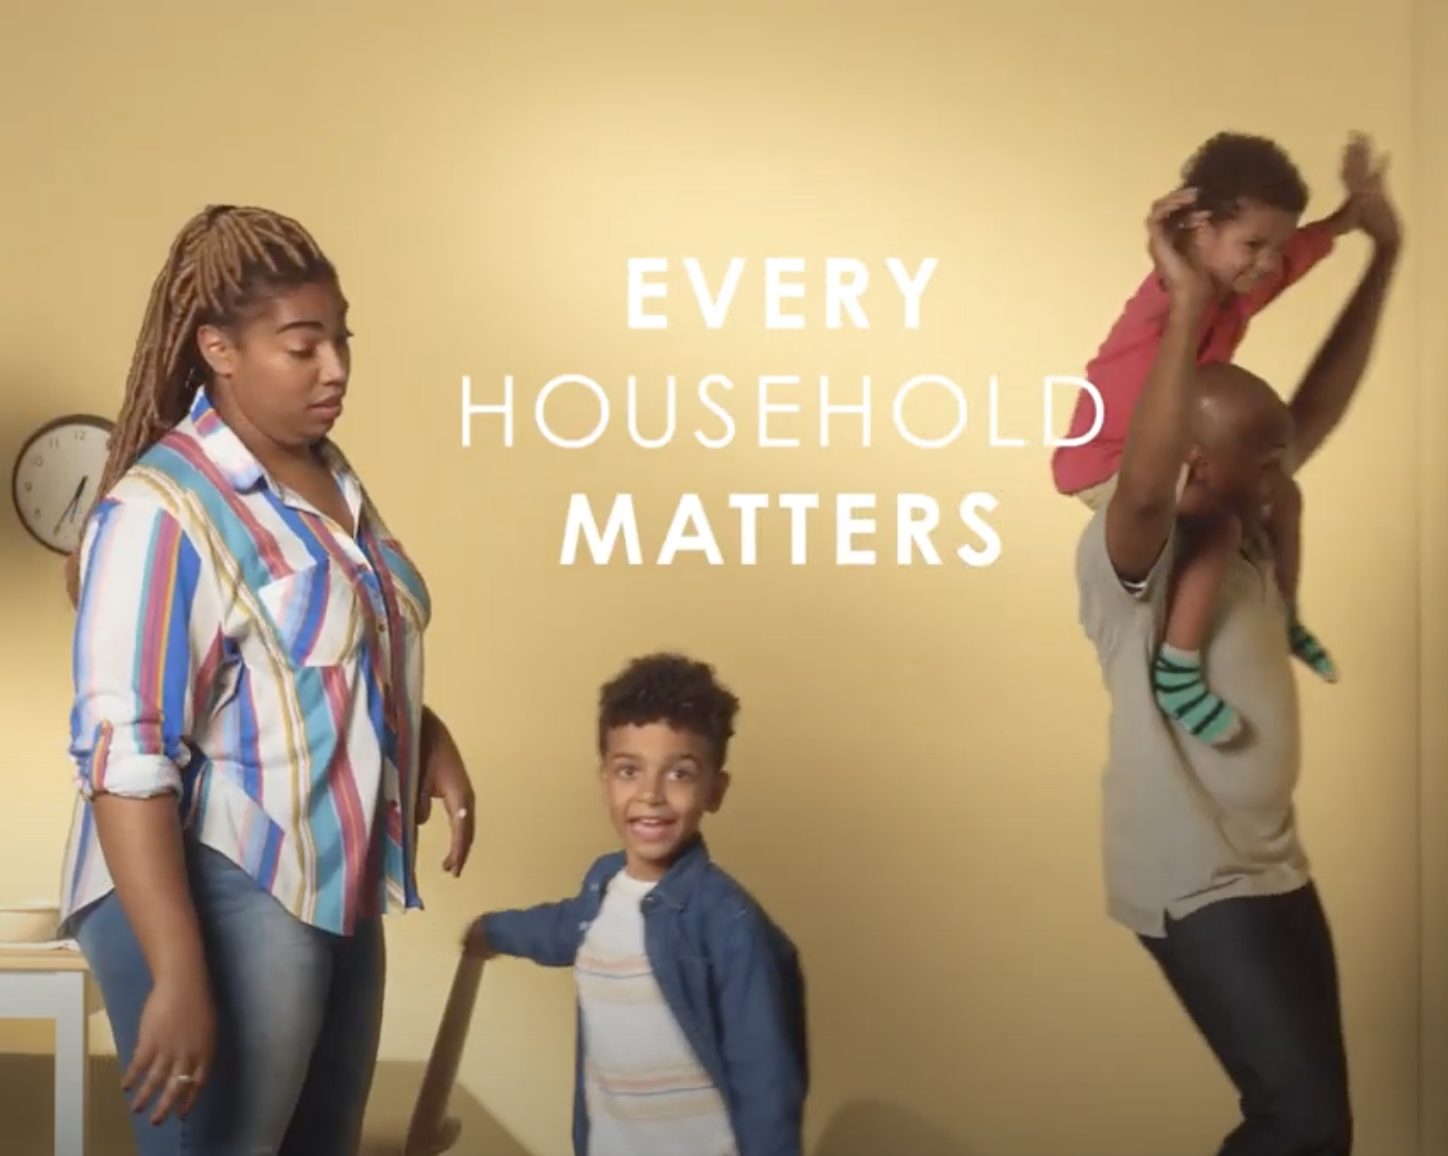 U.S. Census Every Household Matters